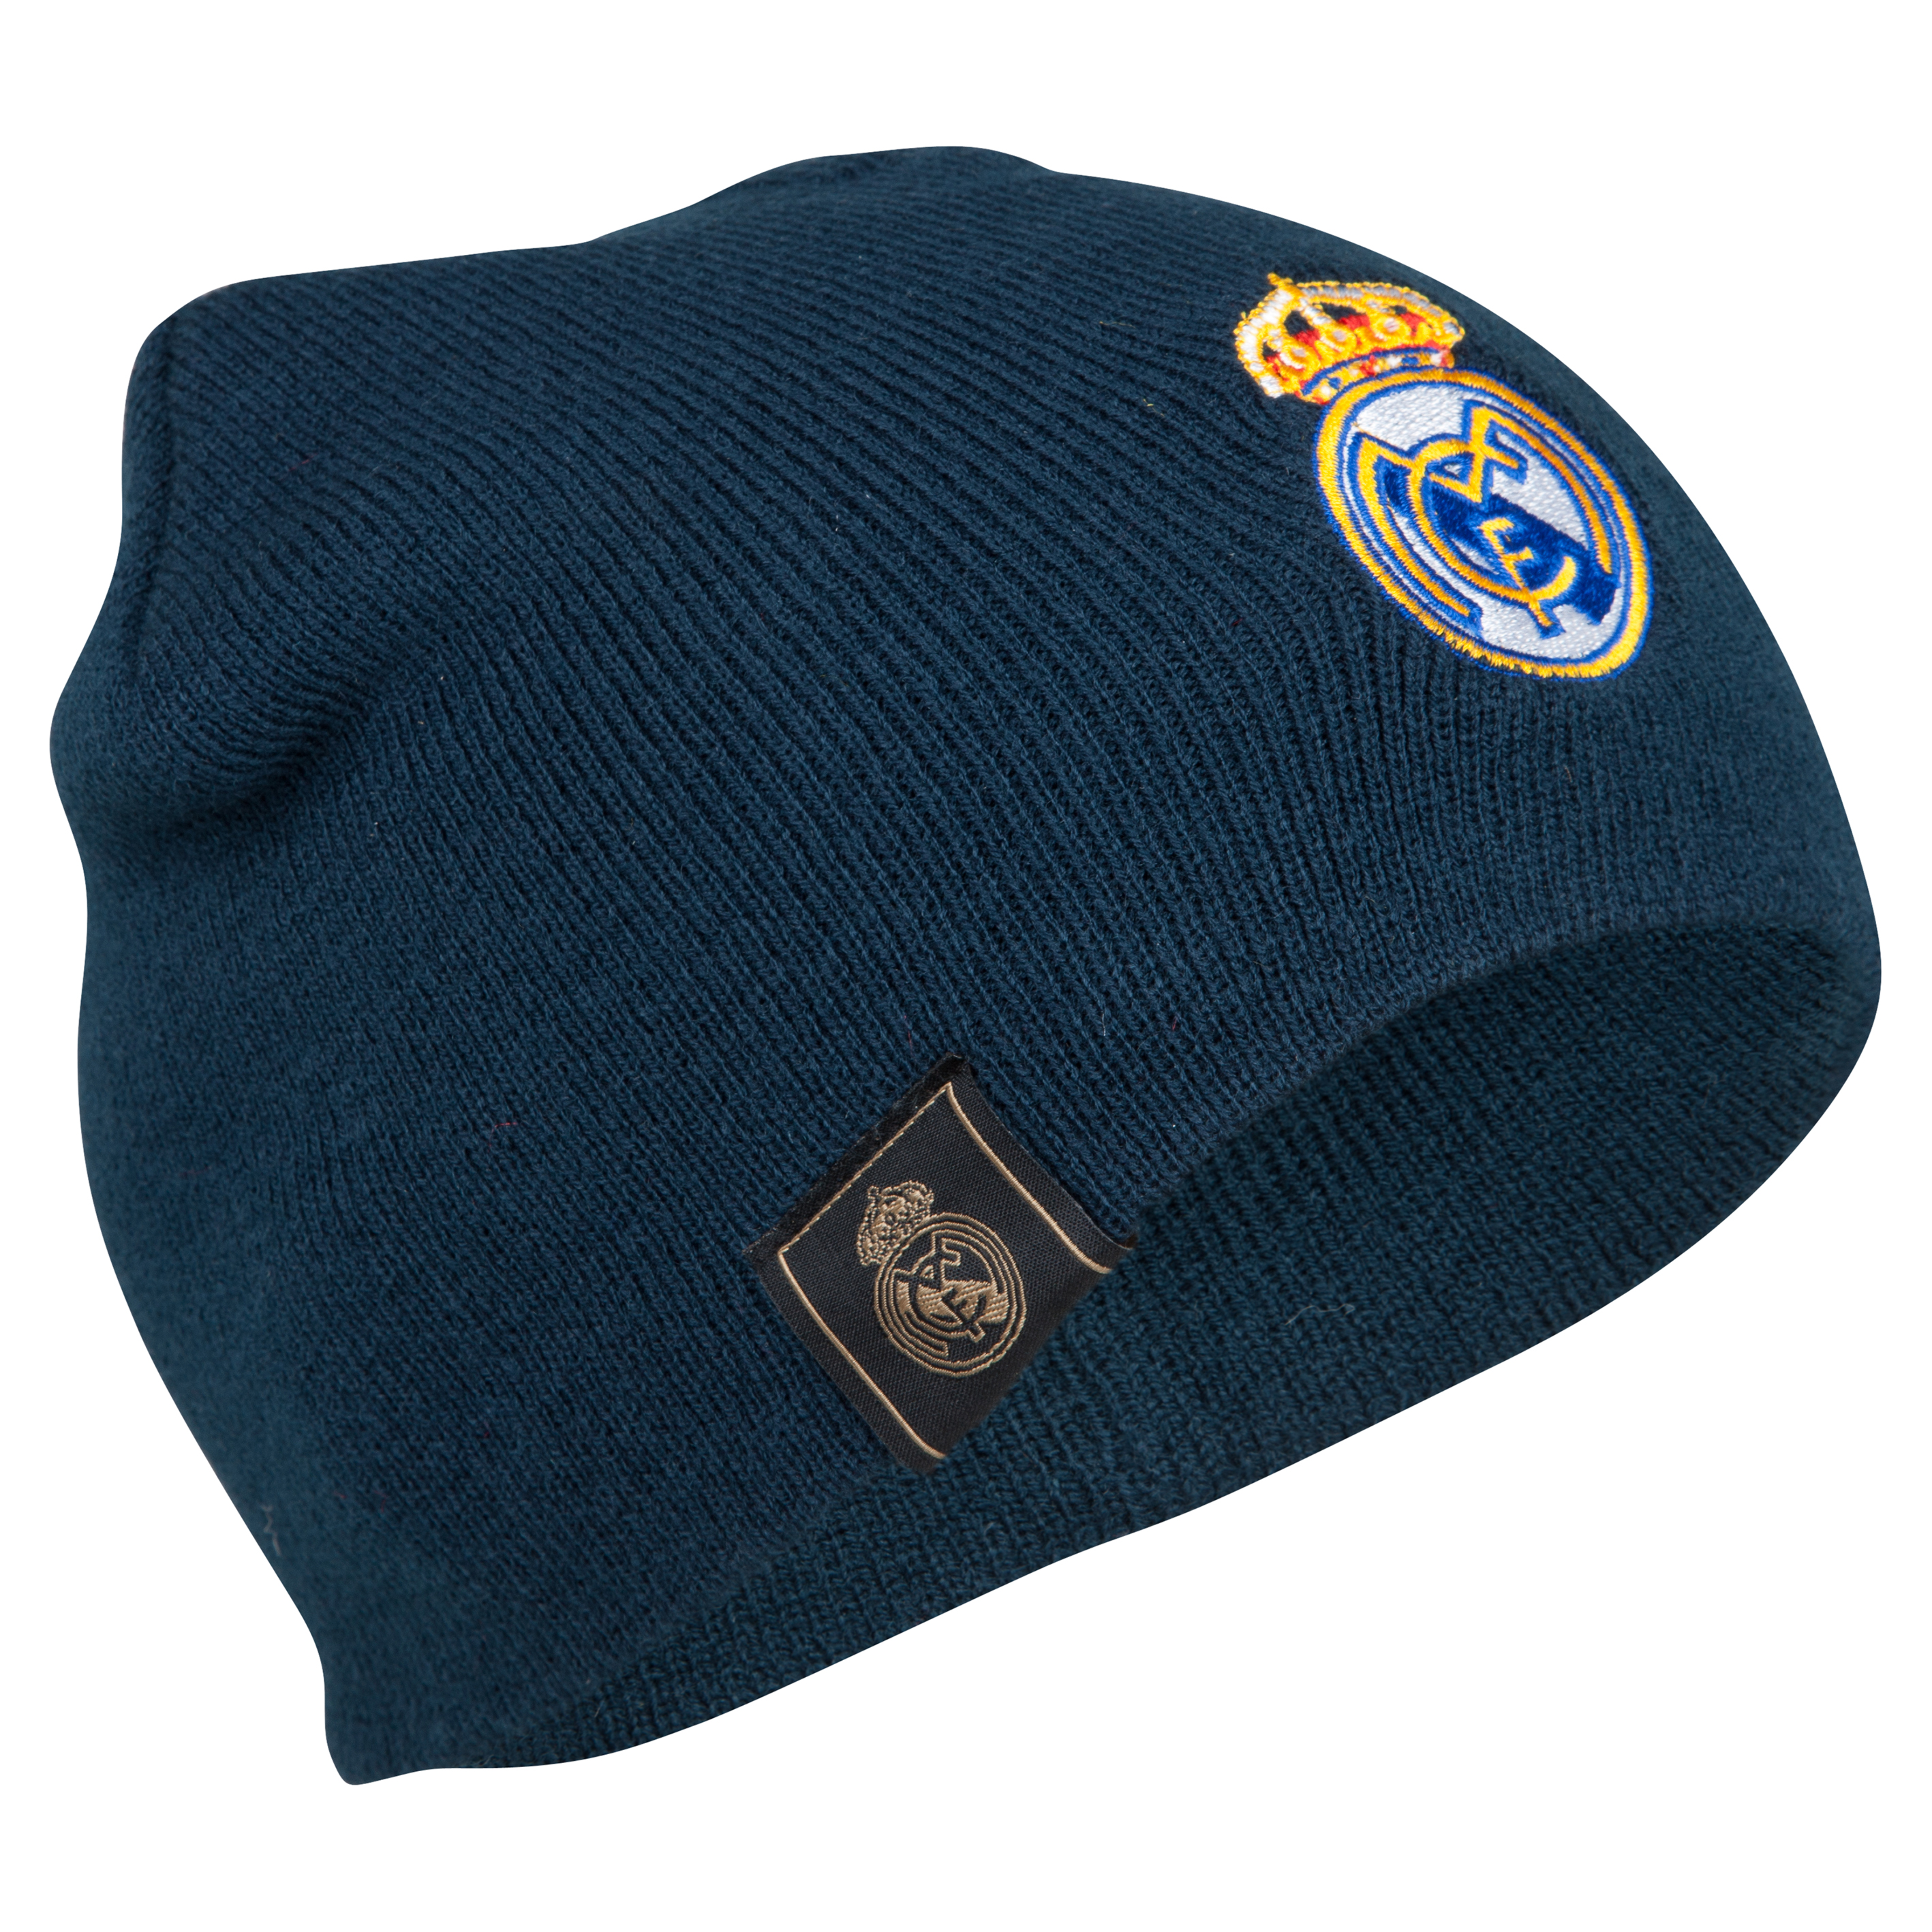 Real Madrid Crest Beanie - Blue